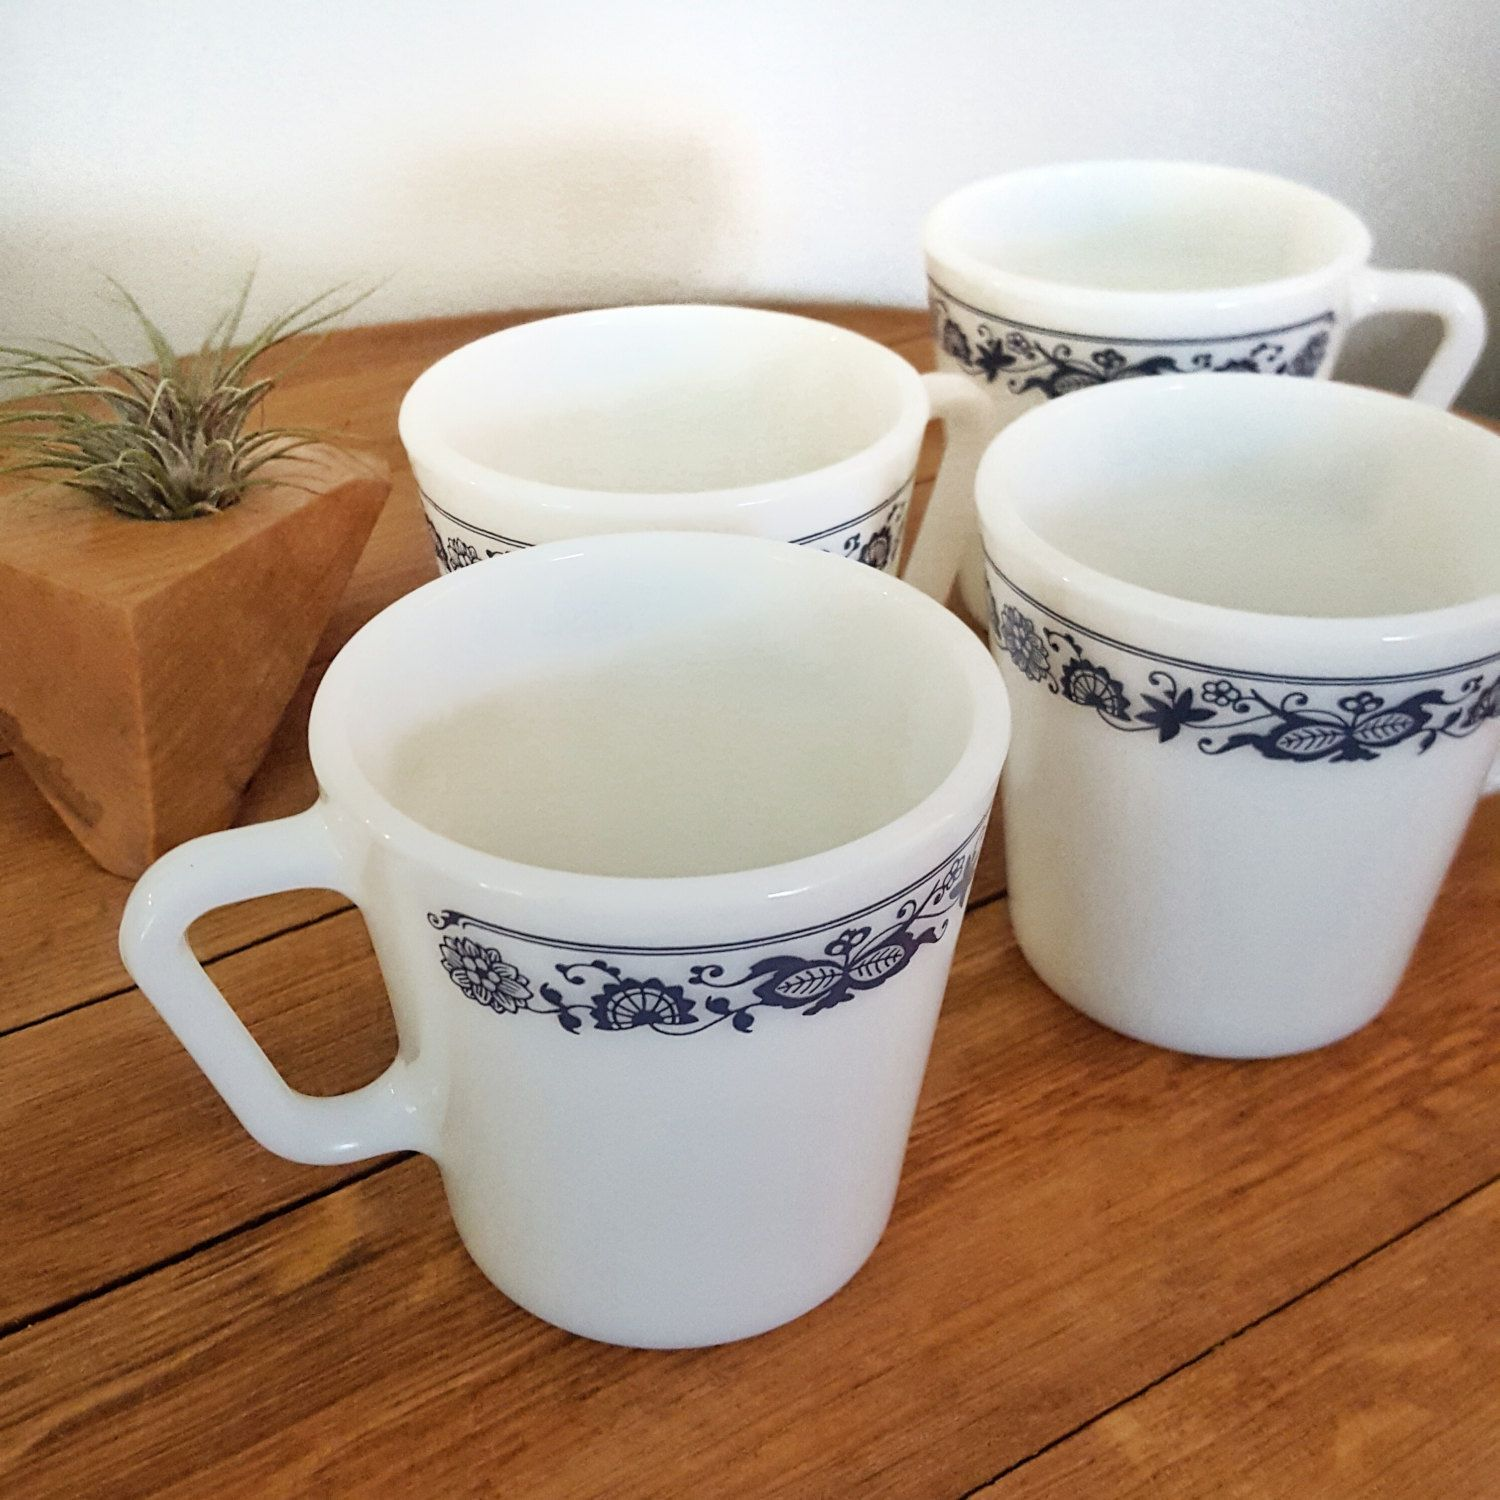 Vintage Pyrex Milk Gl Old Town Blue Onion Pattern Navy On With D Handles Tea Cups Coffee Mugs